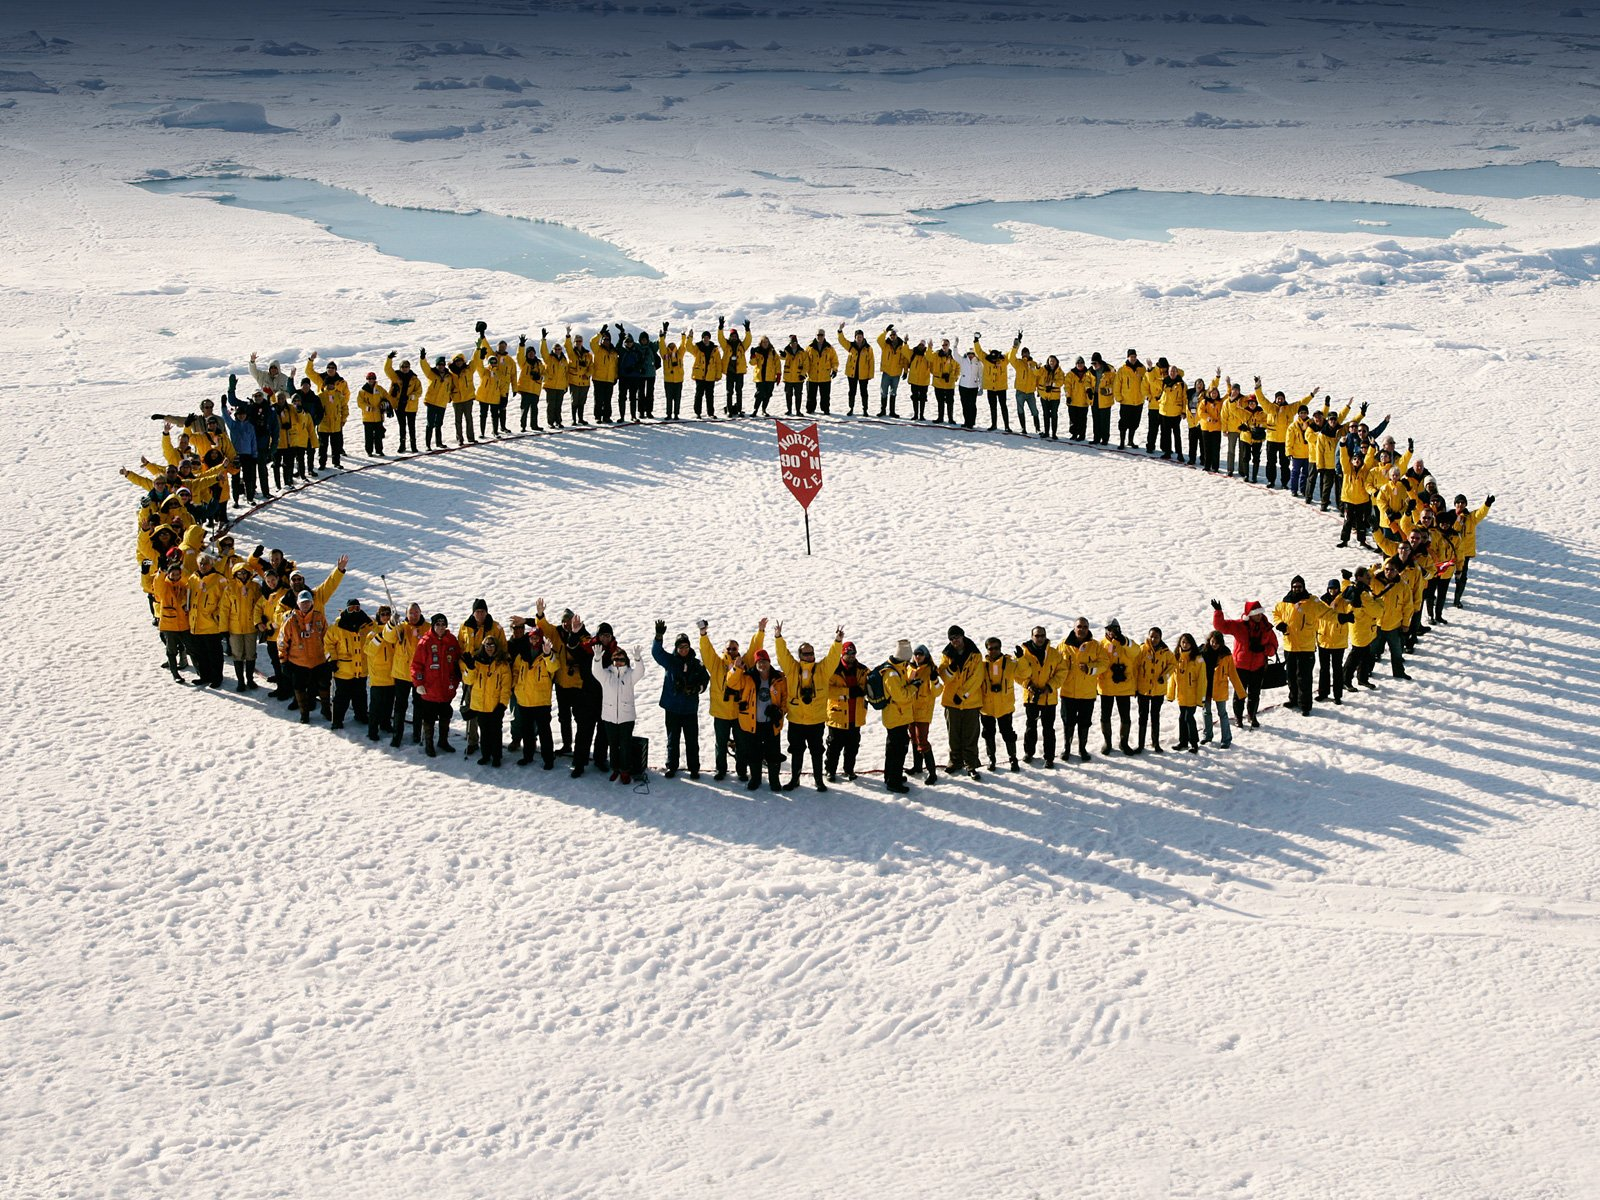 Passengers gather on the sea ice to celebrate the feat of reaching the North Pole by small expedition ship. Photo: John Weller